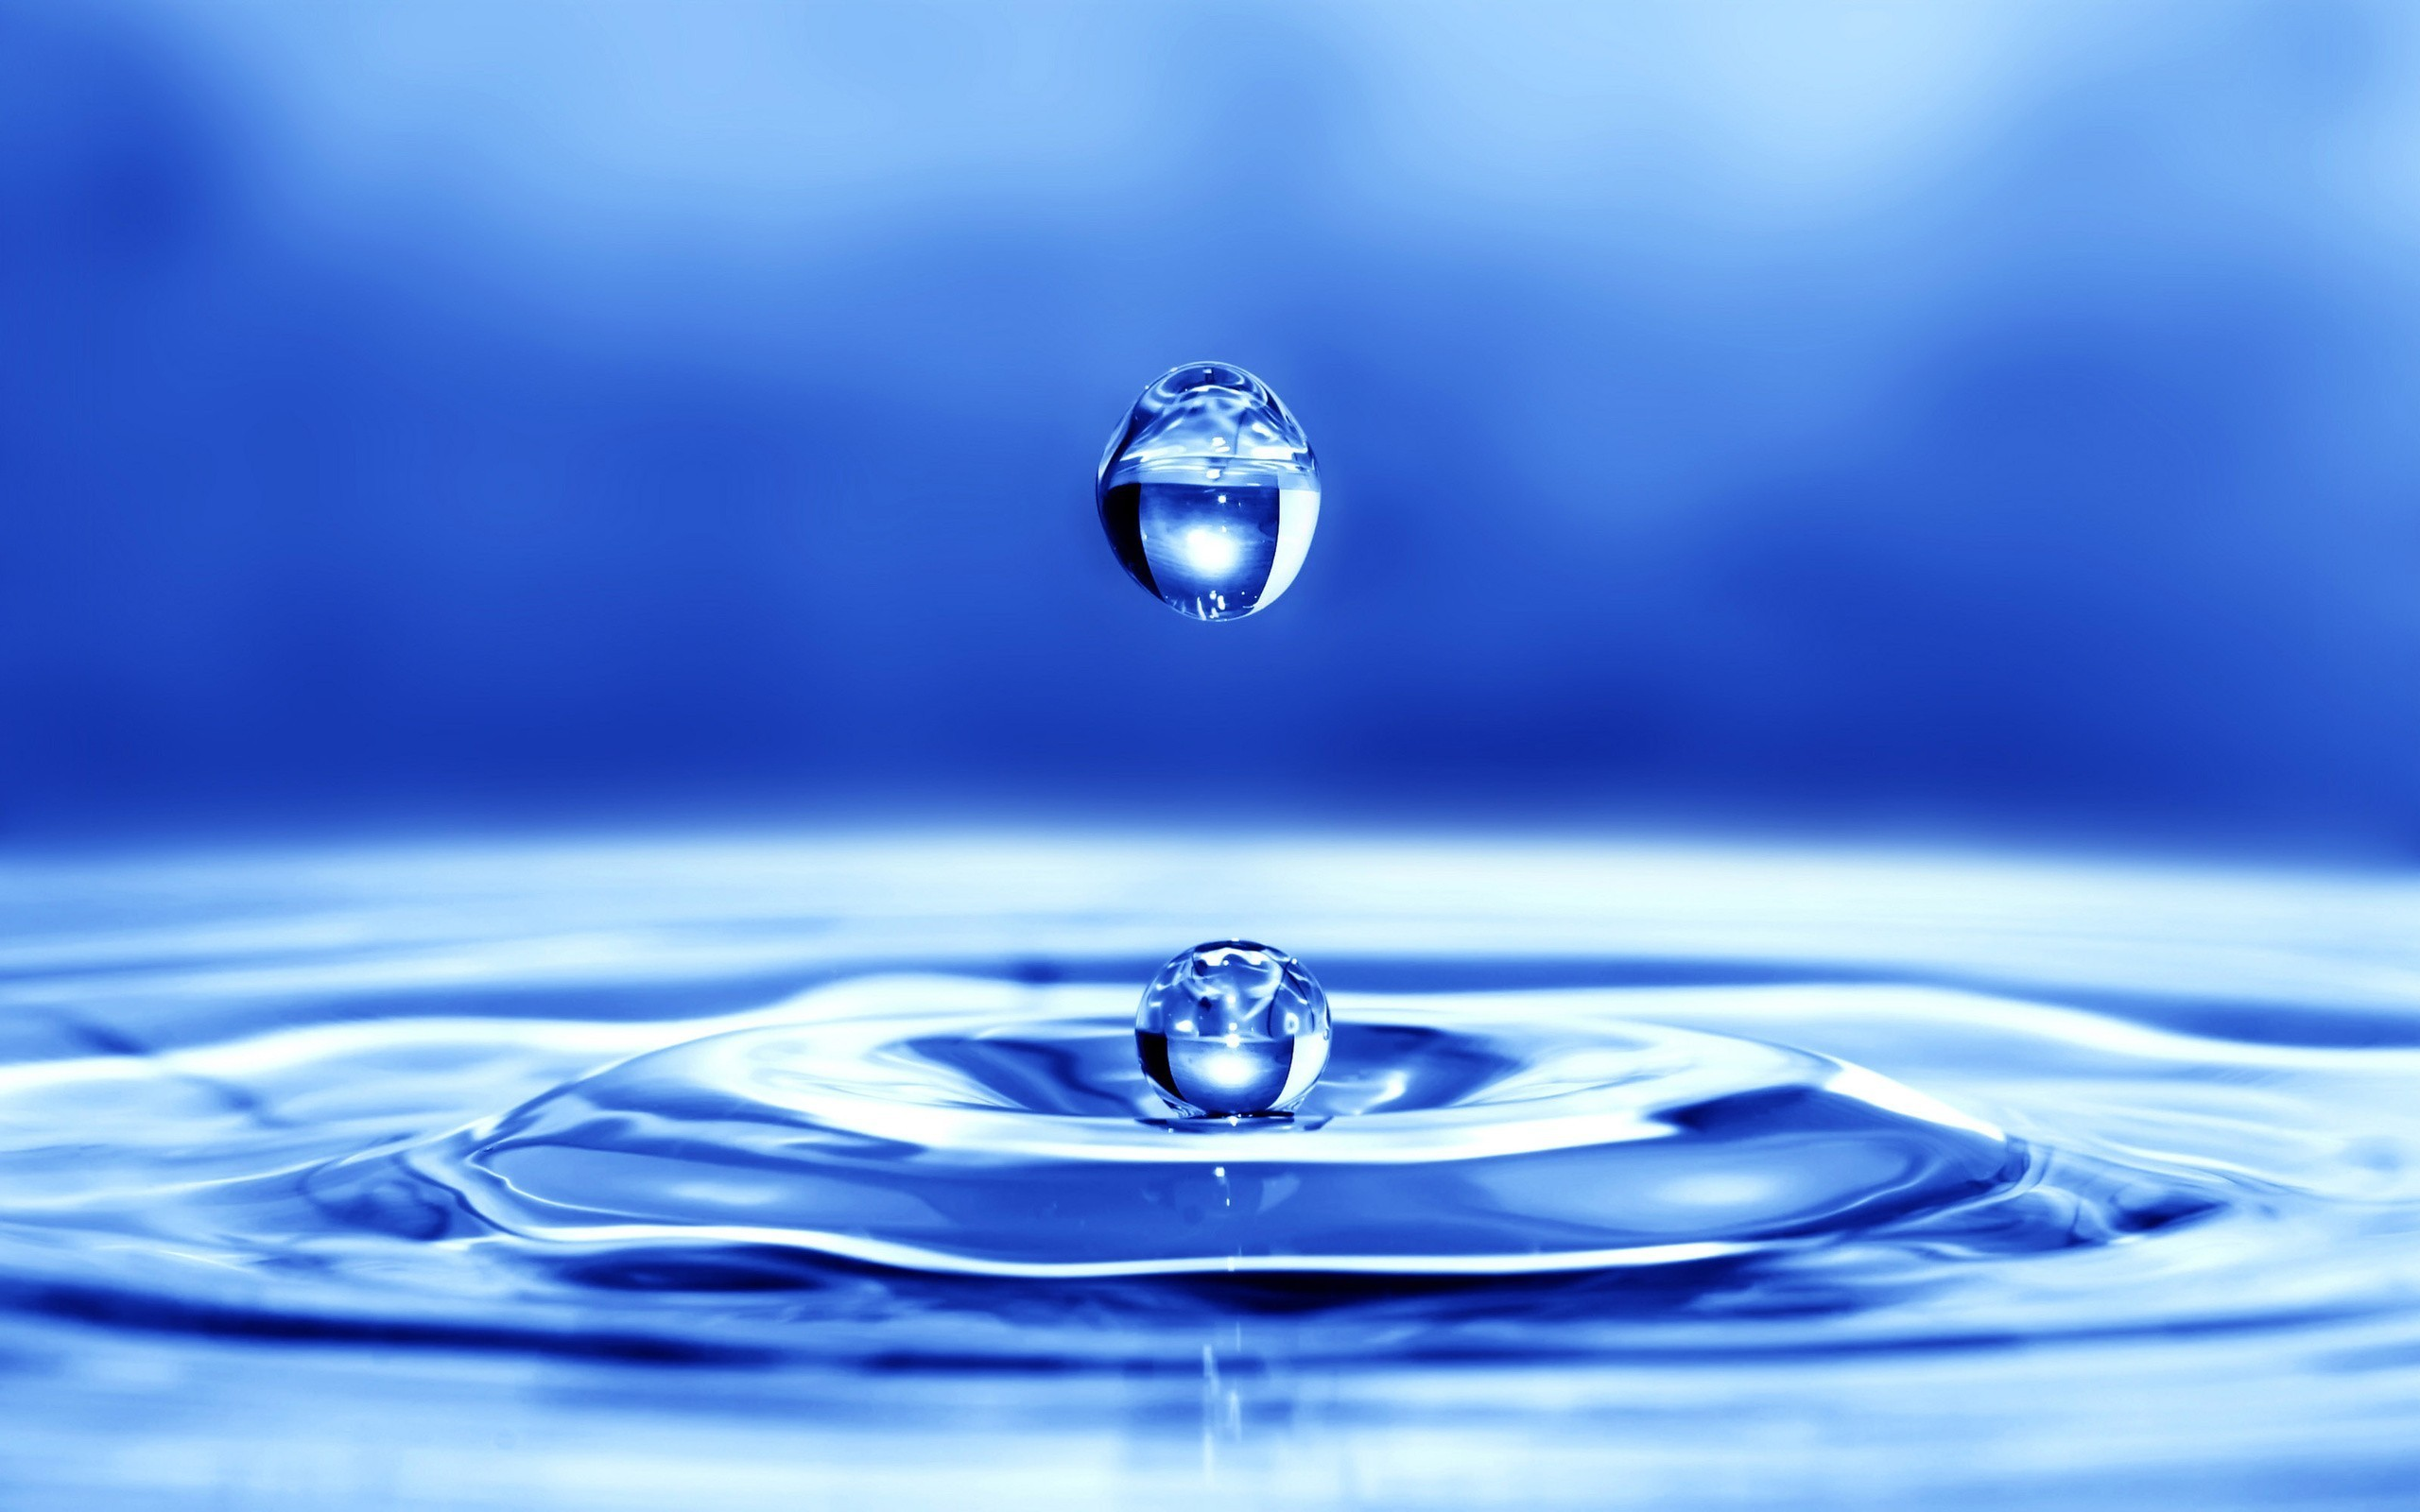 wpid-Photography-Water-Drop-Wallpaper-95